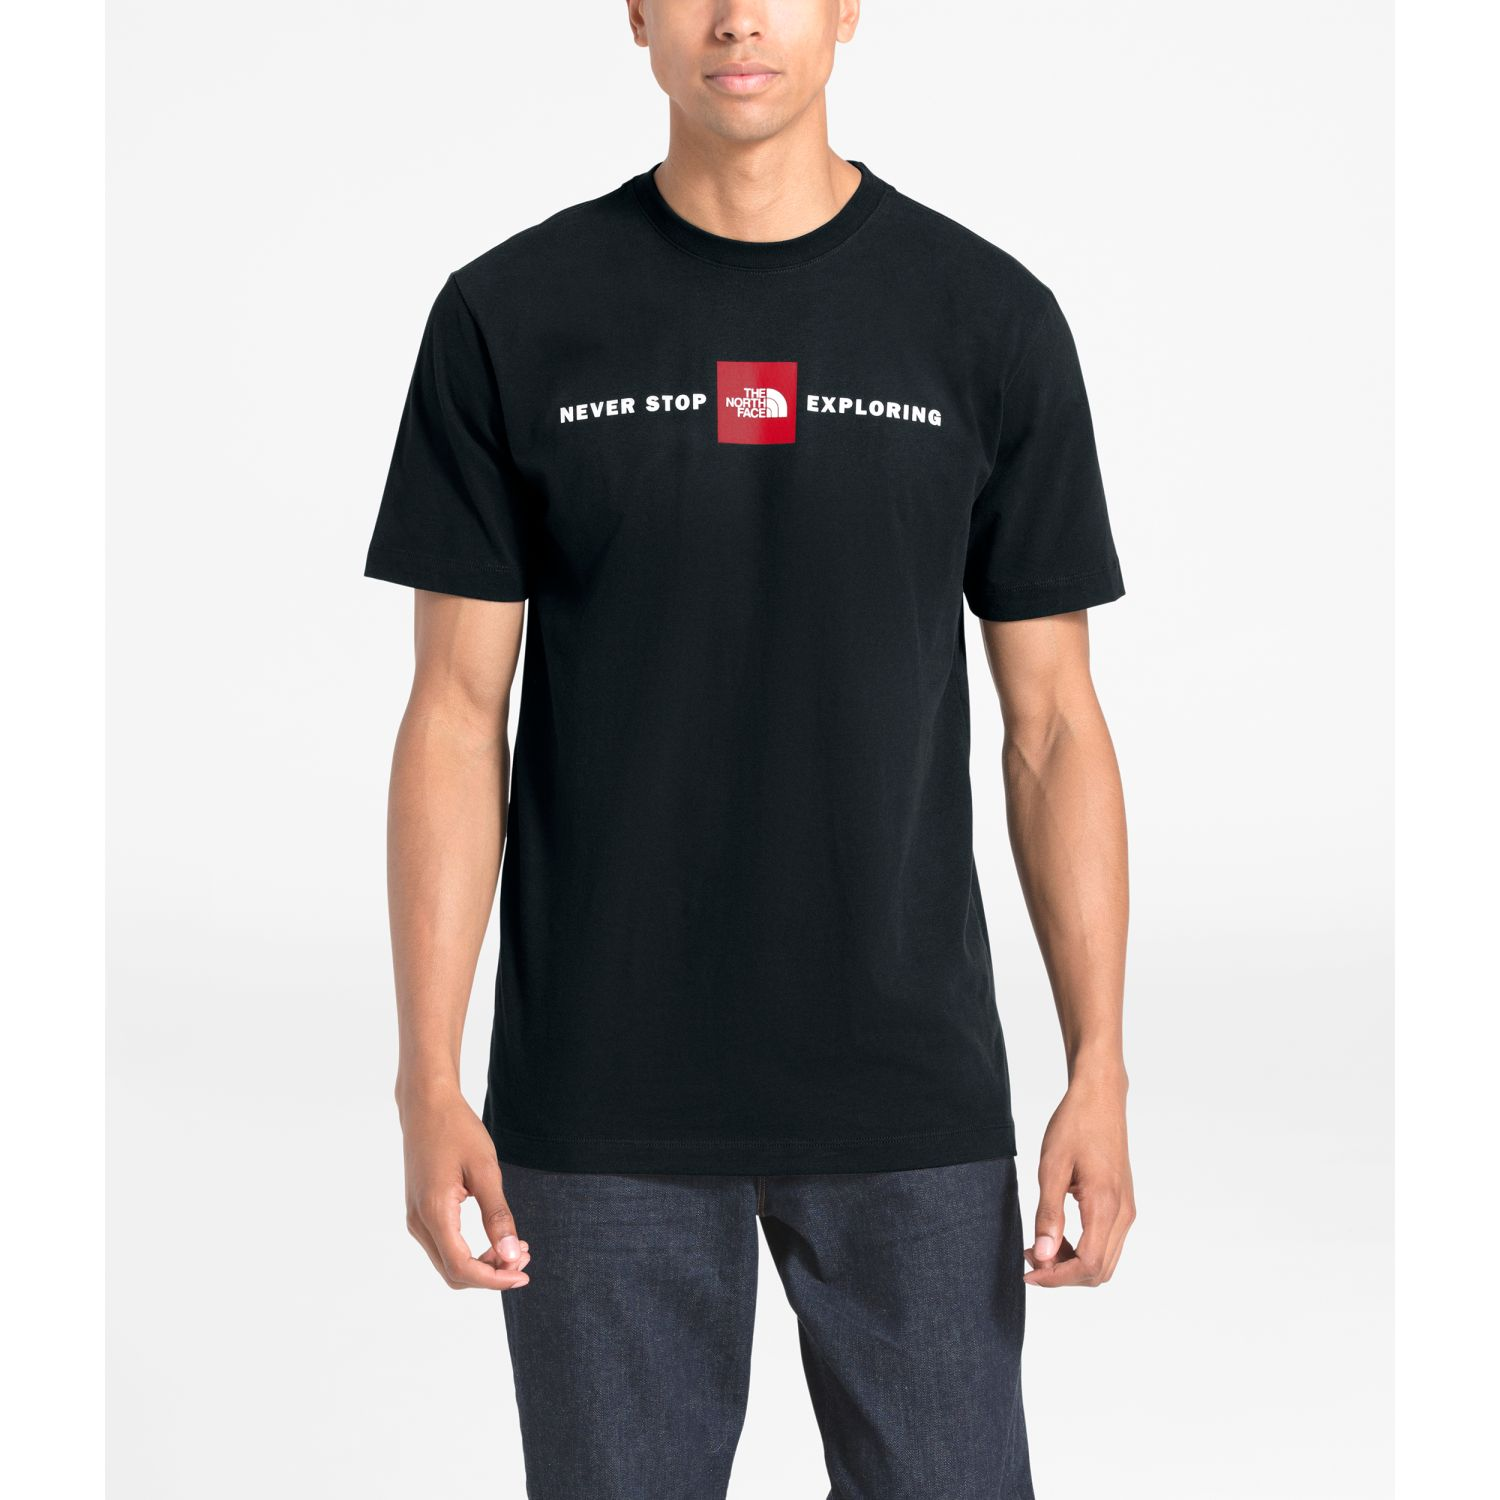 The North Face m s/s red's cotton tee Negro Camisetas y Polos Deportivos